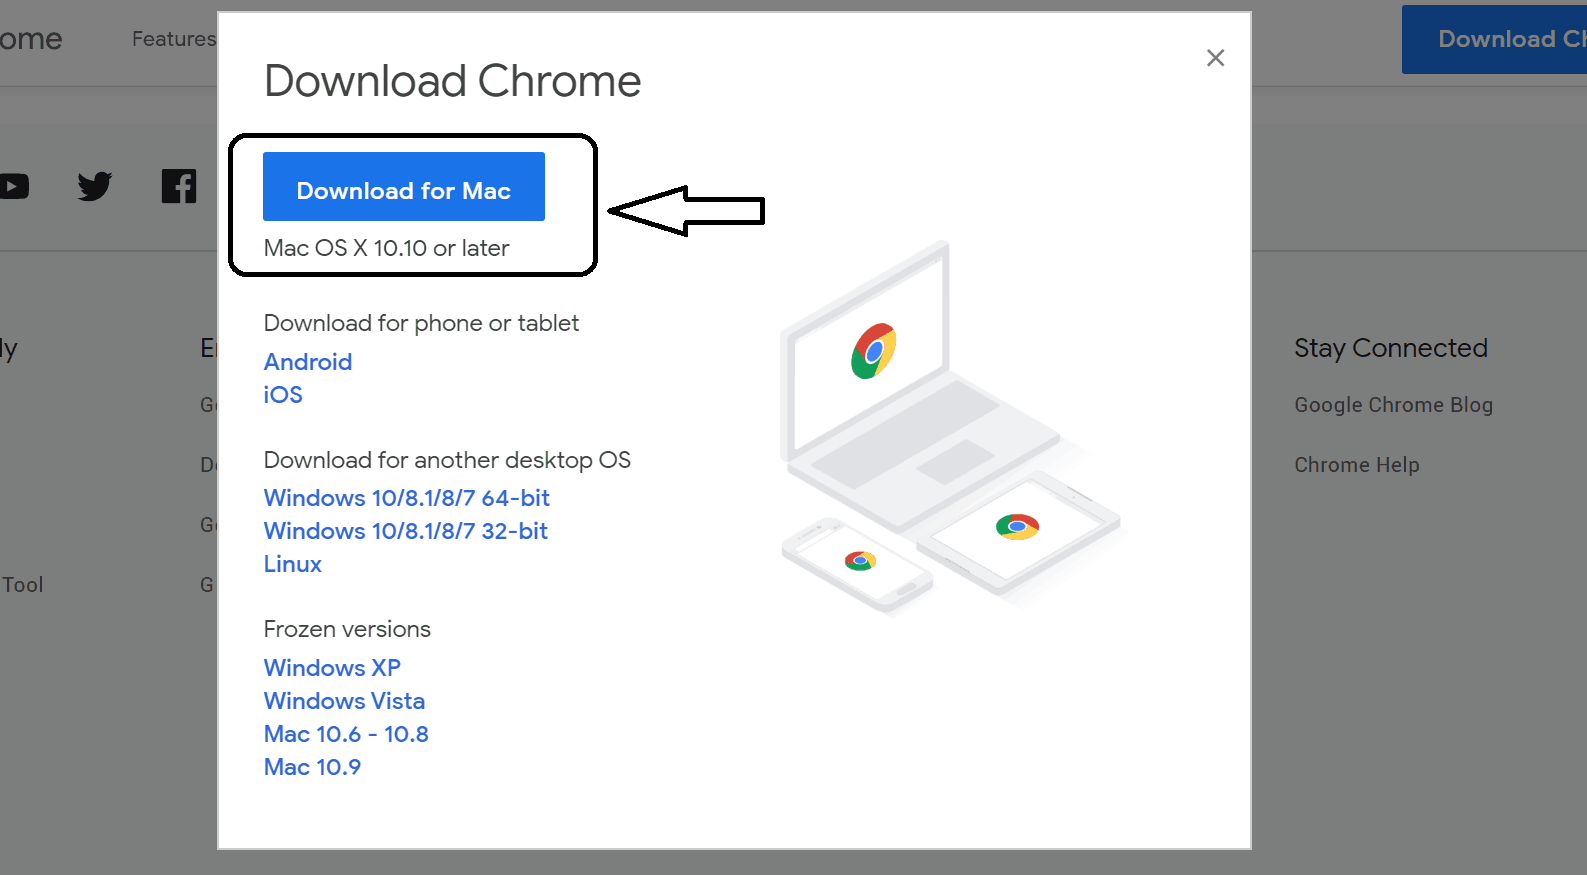 Download and install chrome 9 for mac latest